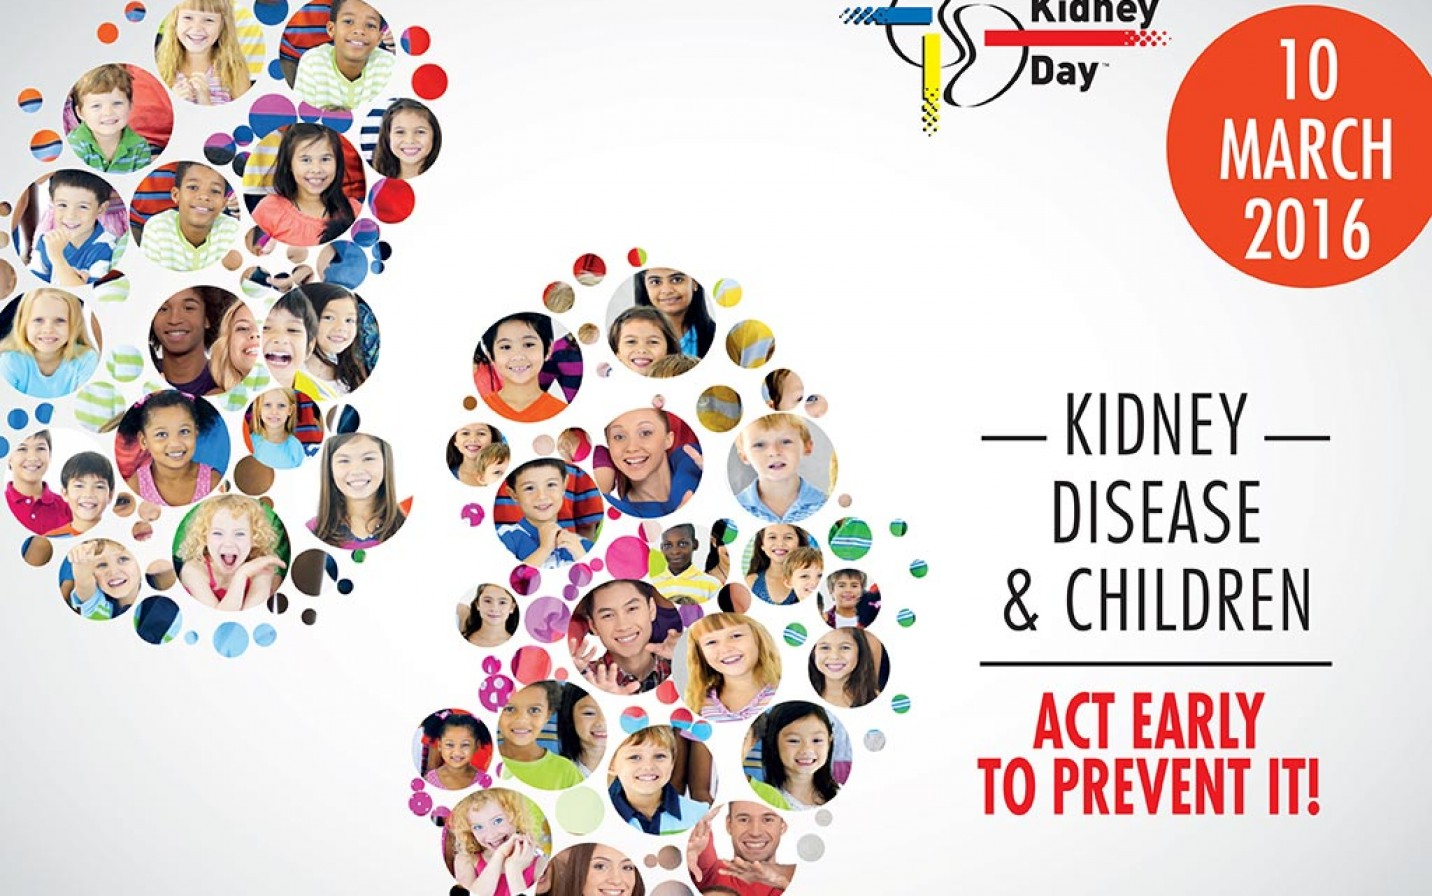 World kidney day march 10 2016